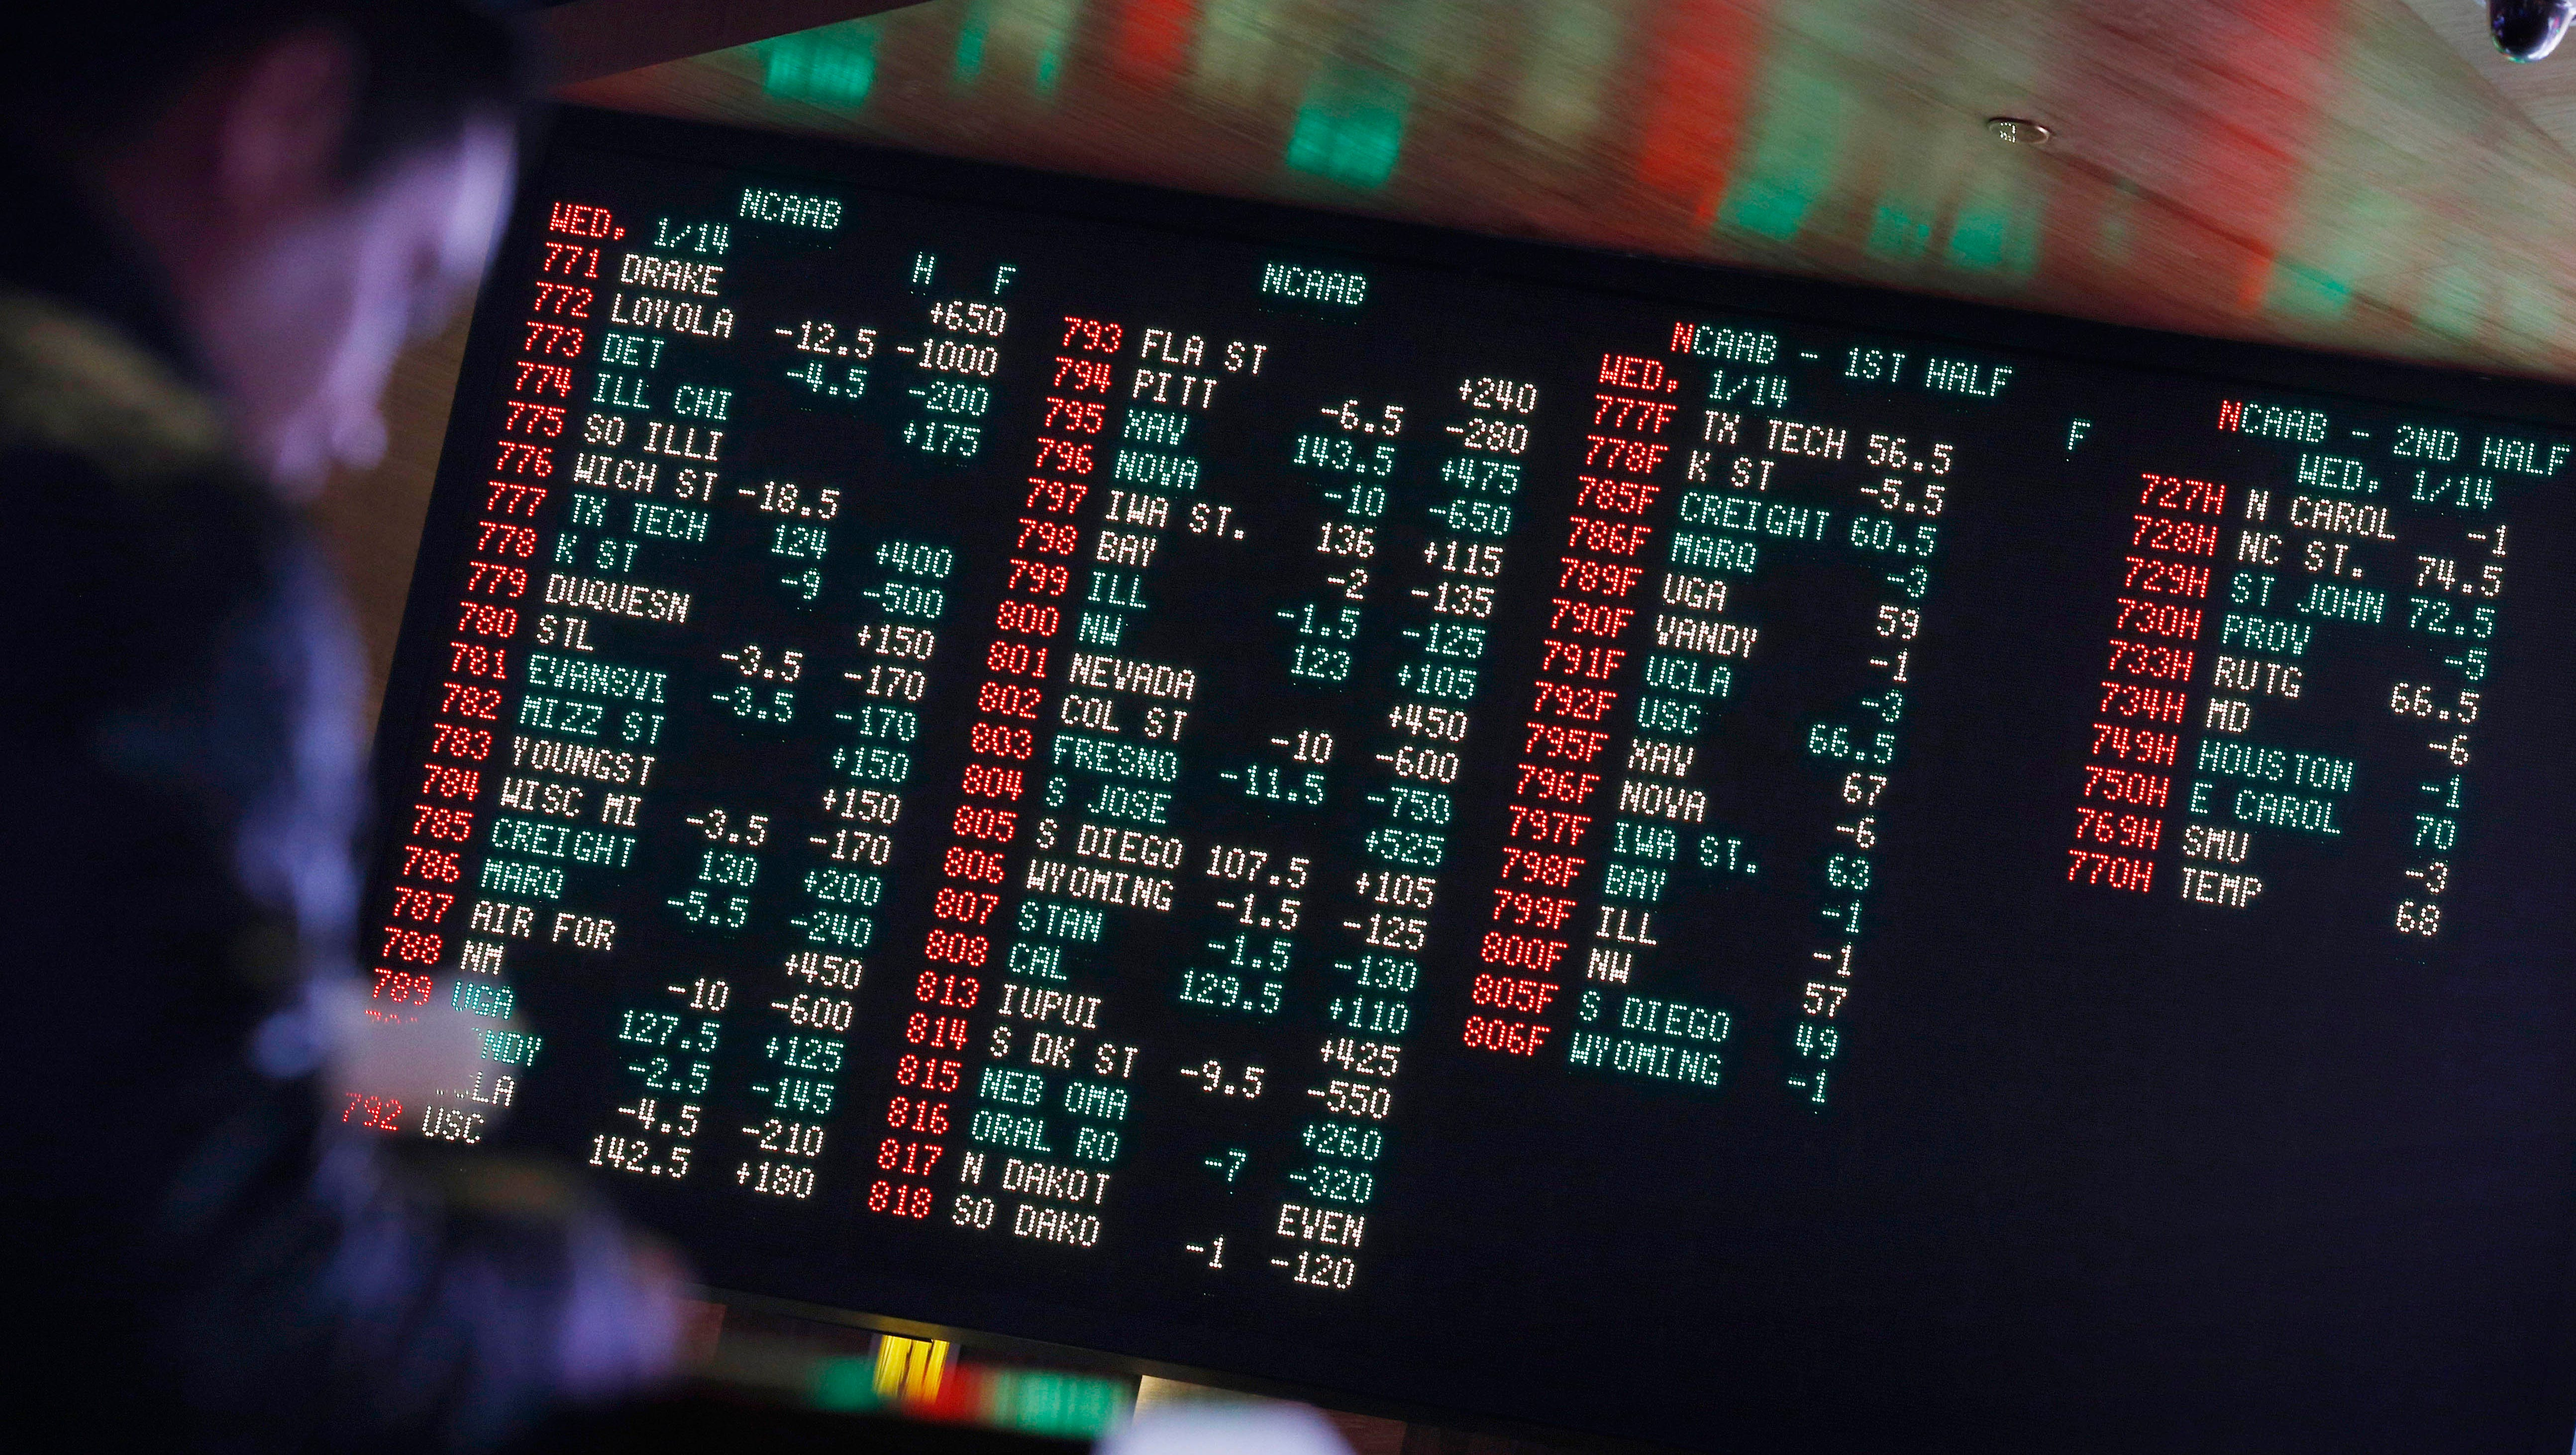 Sports betting overturned largest bet placed on leicester in las vegas